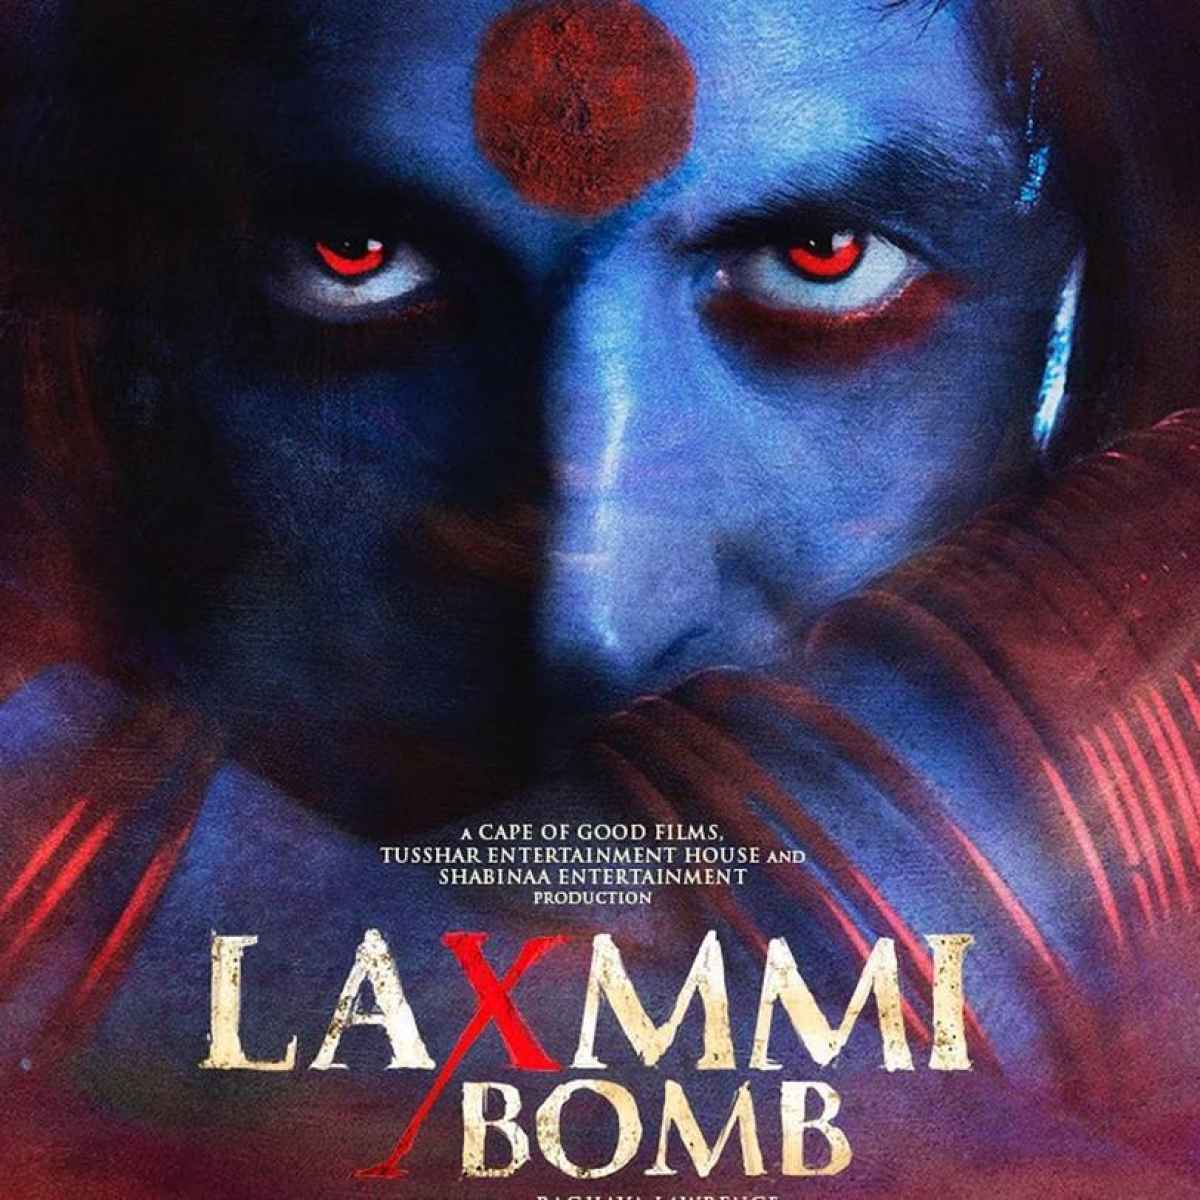 'Ban Laxmmi Bomb' trends after Akshay Kumar defends Bollywood over alleged drug nexus